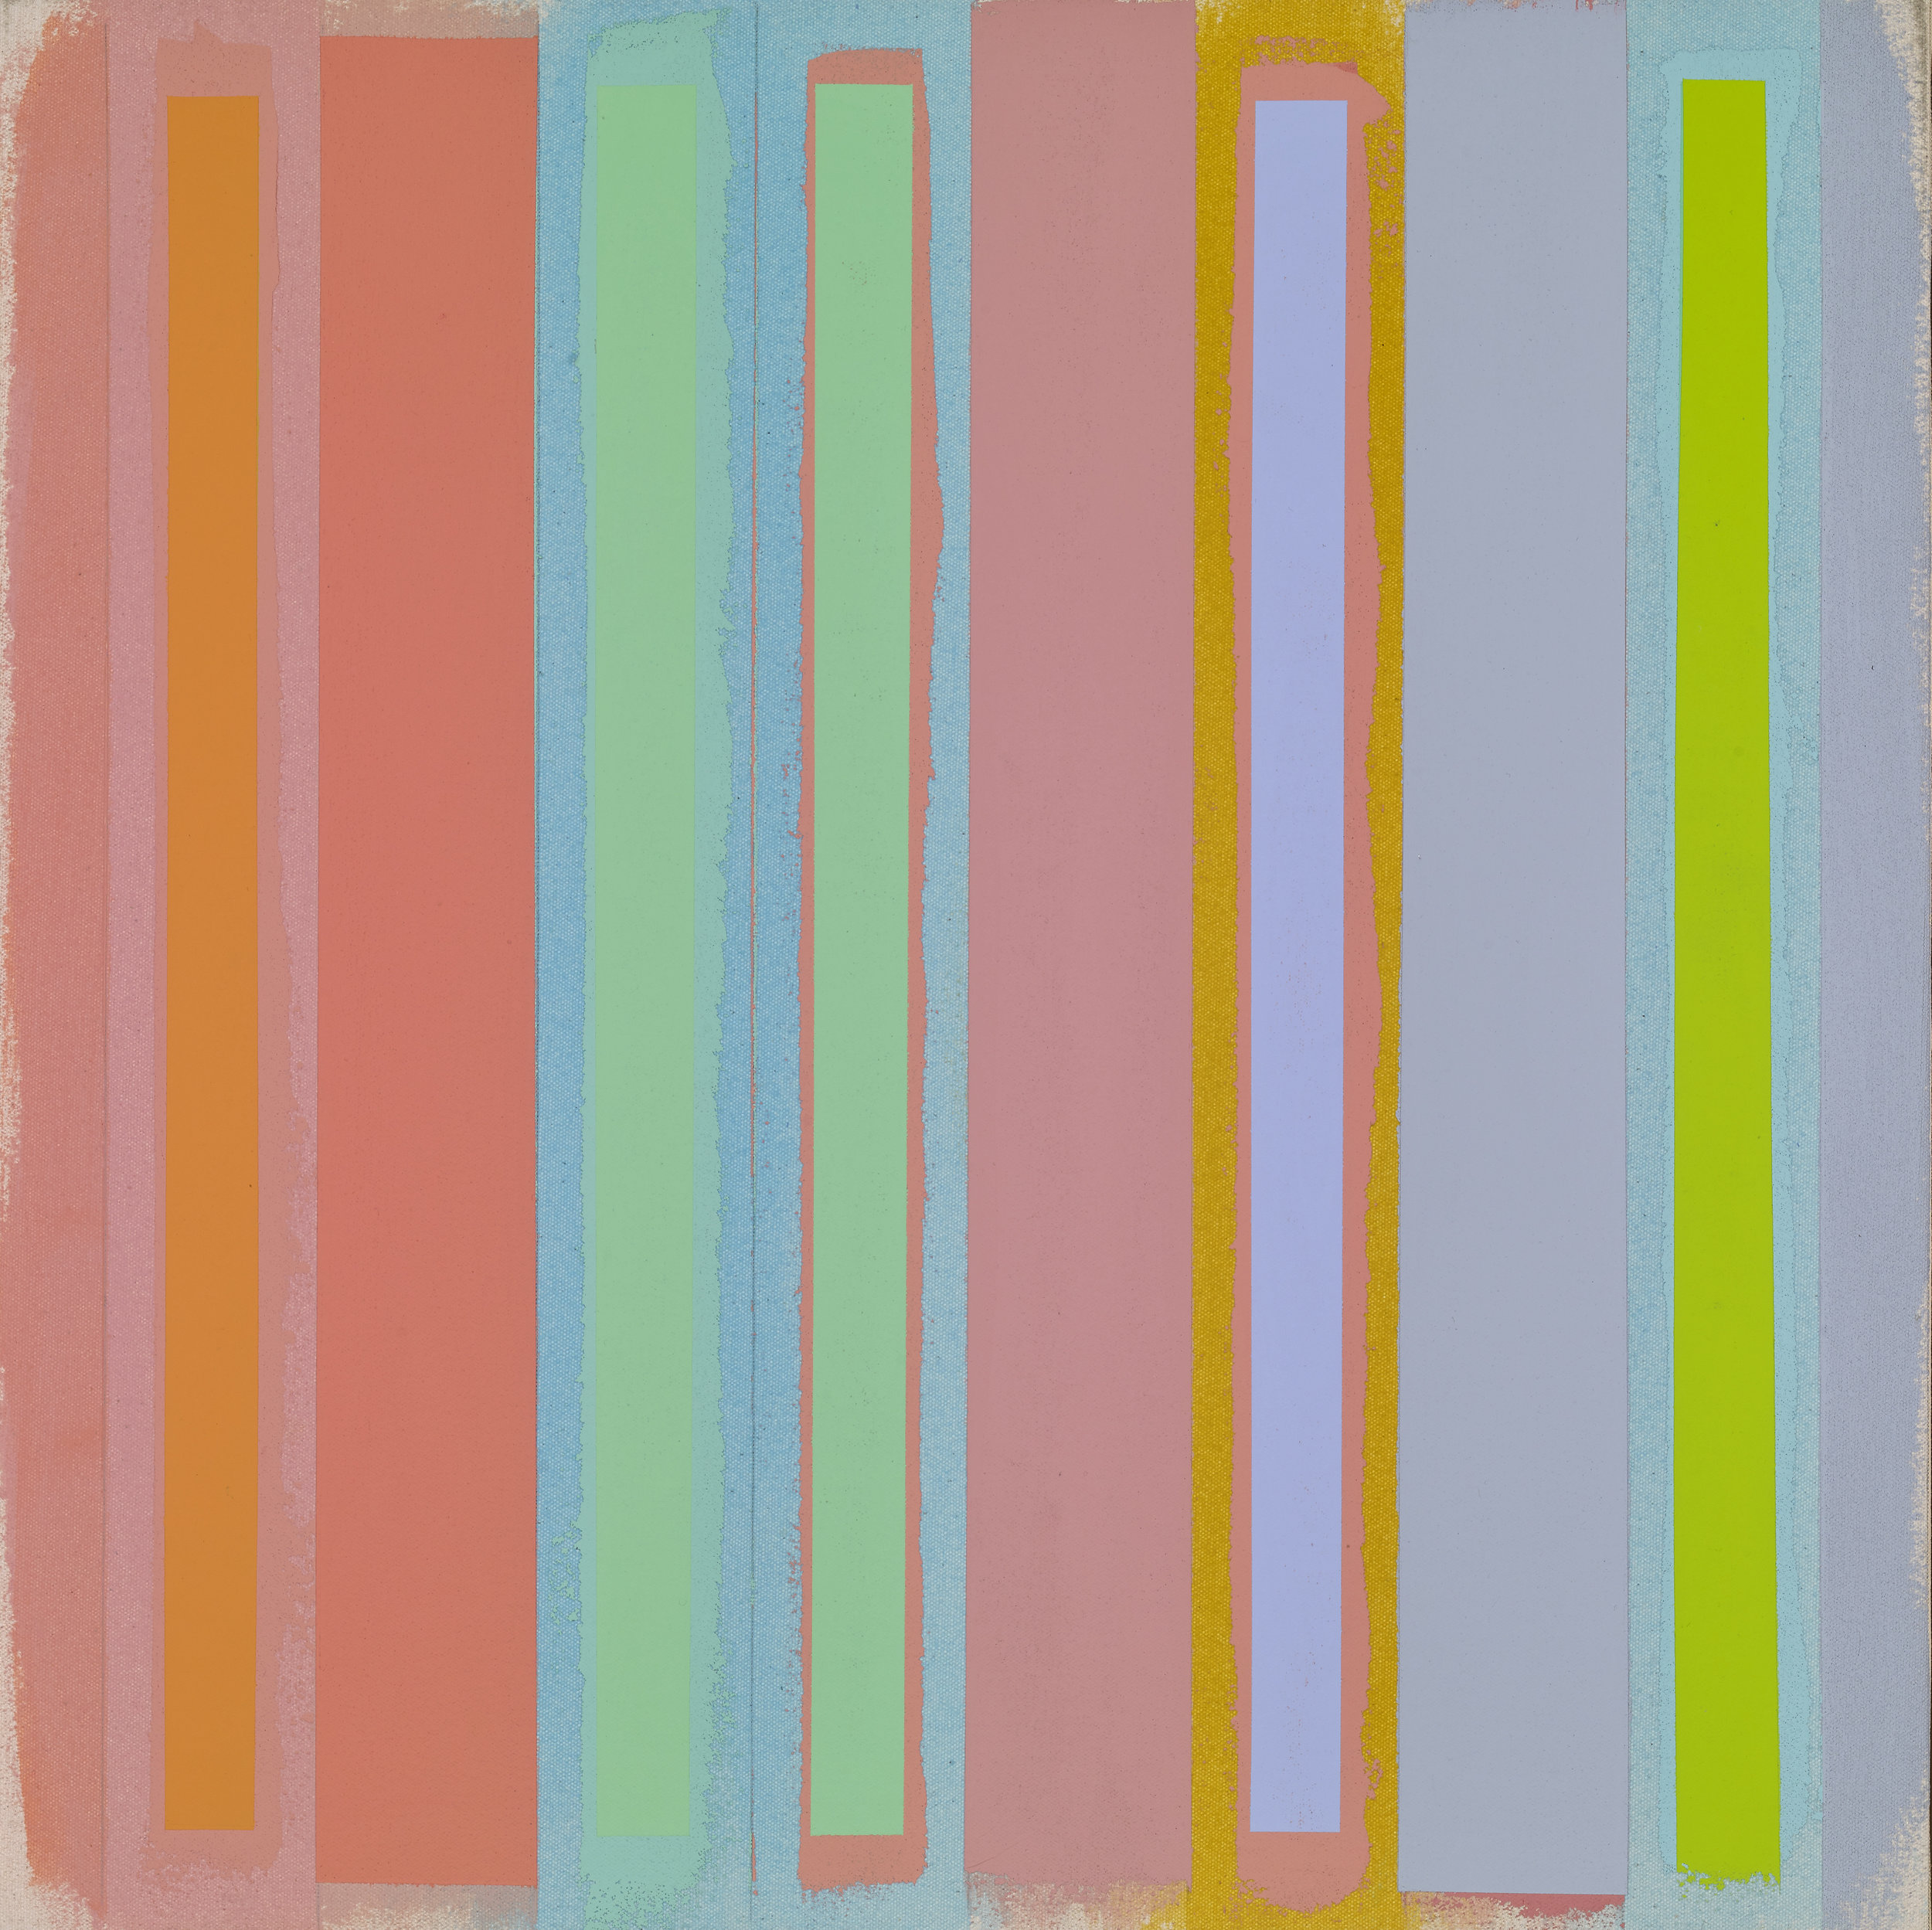 Untitled, 2003  acrylic and oil on canvas 17 3/4 x 17 1/2 inches; 45.1 x 44.5 centimeters